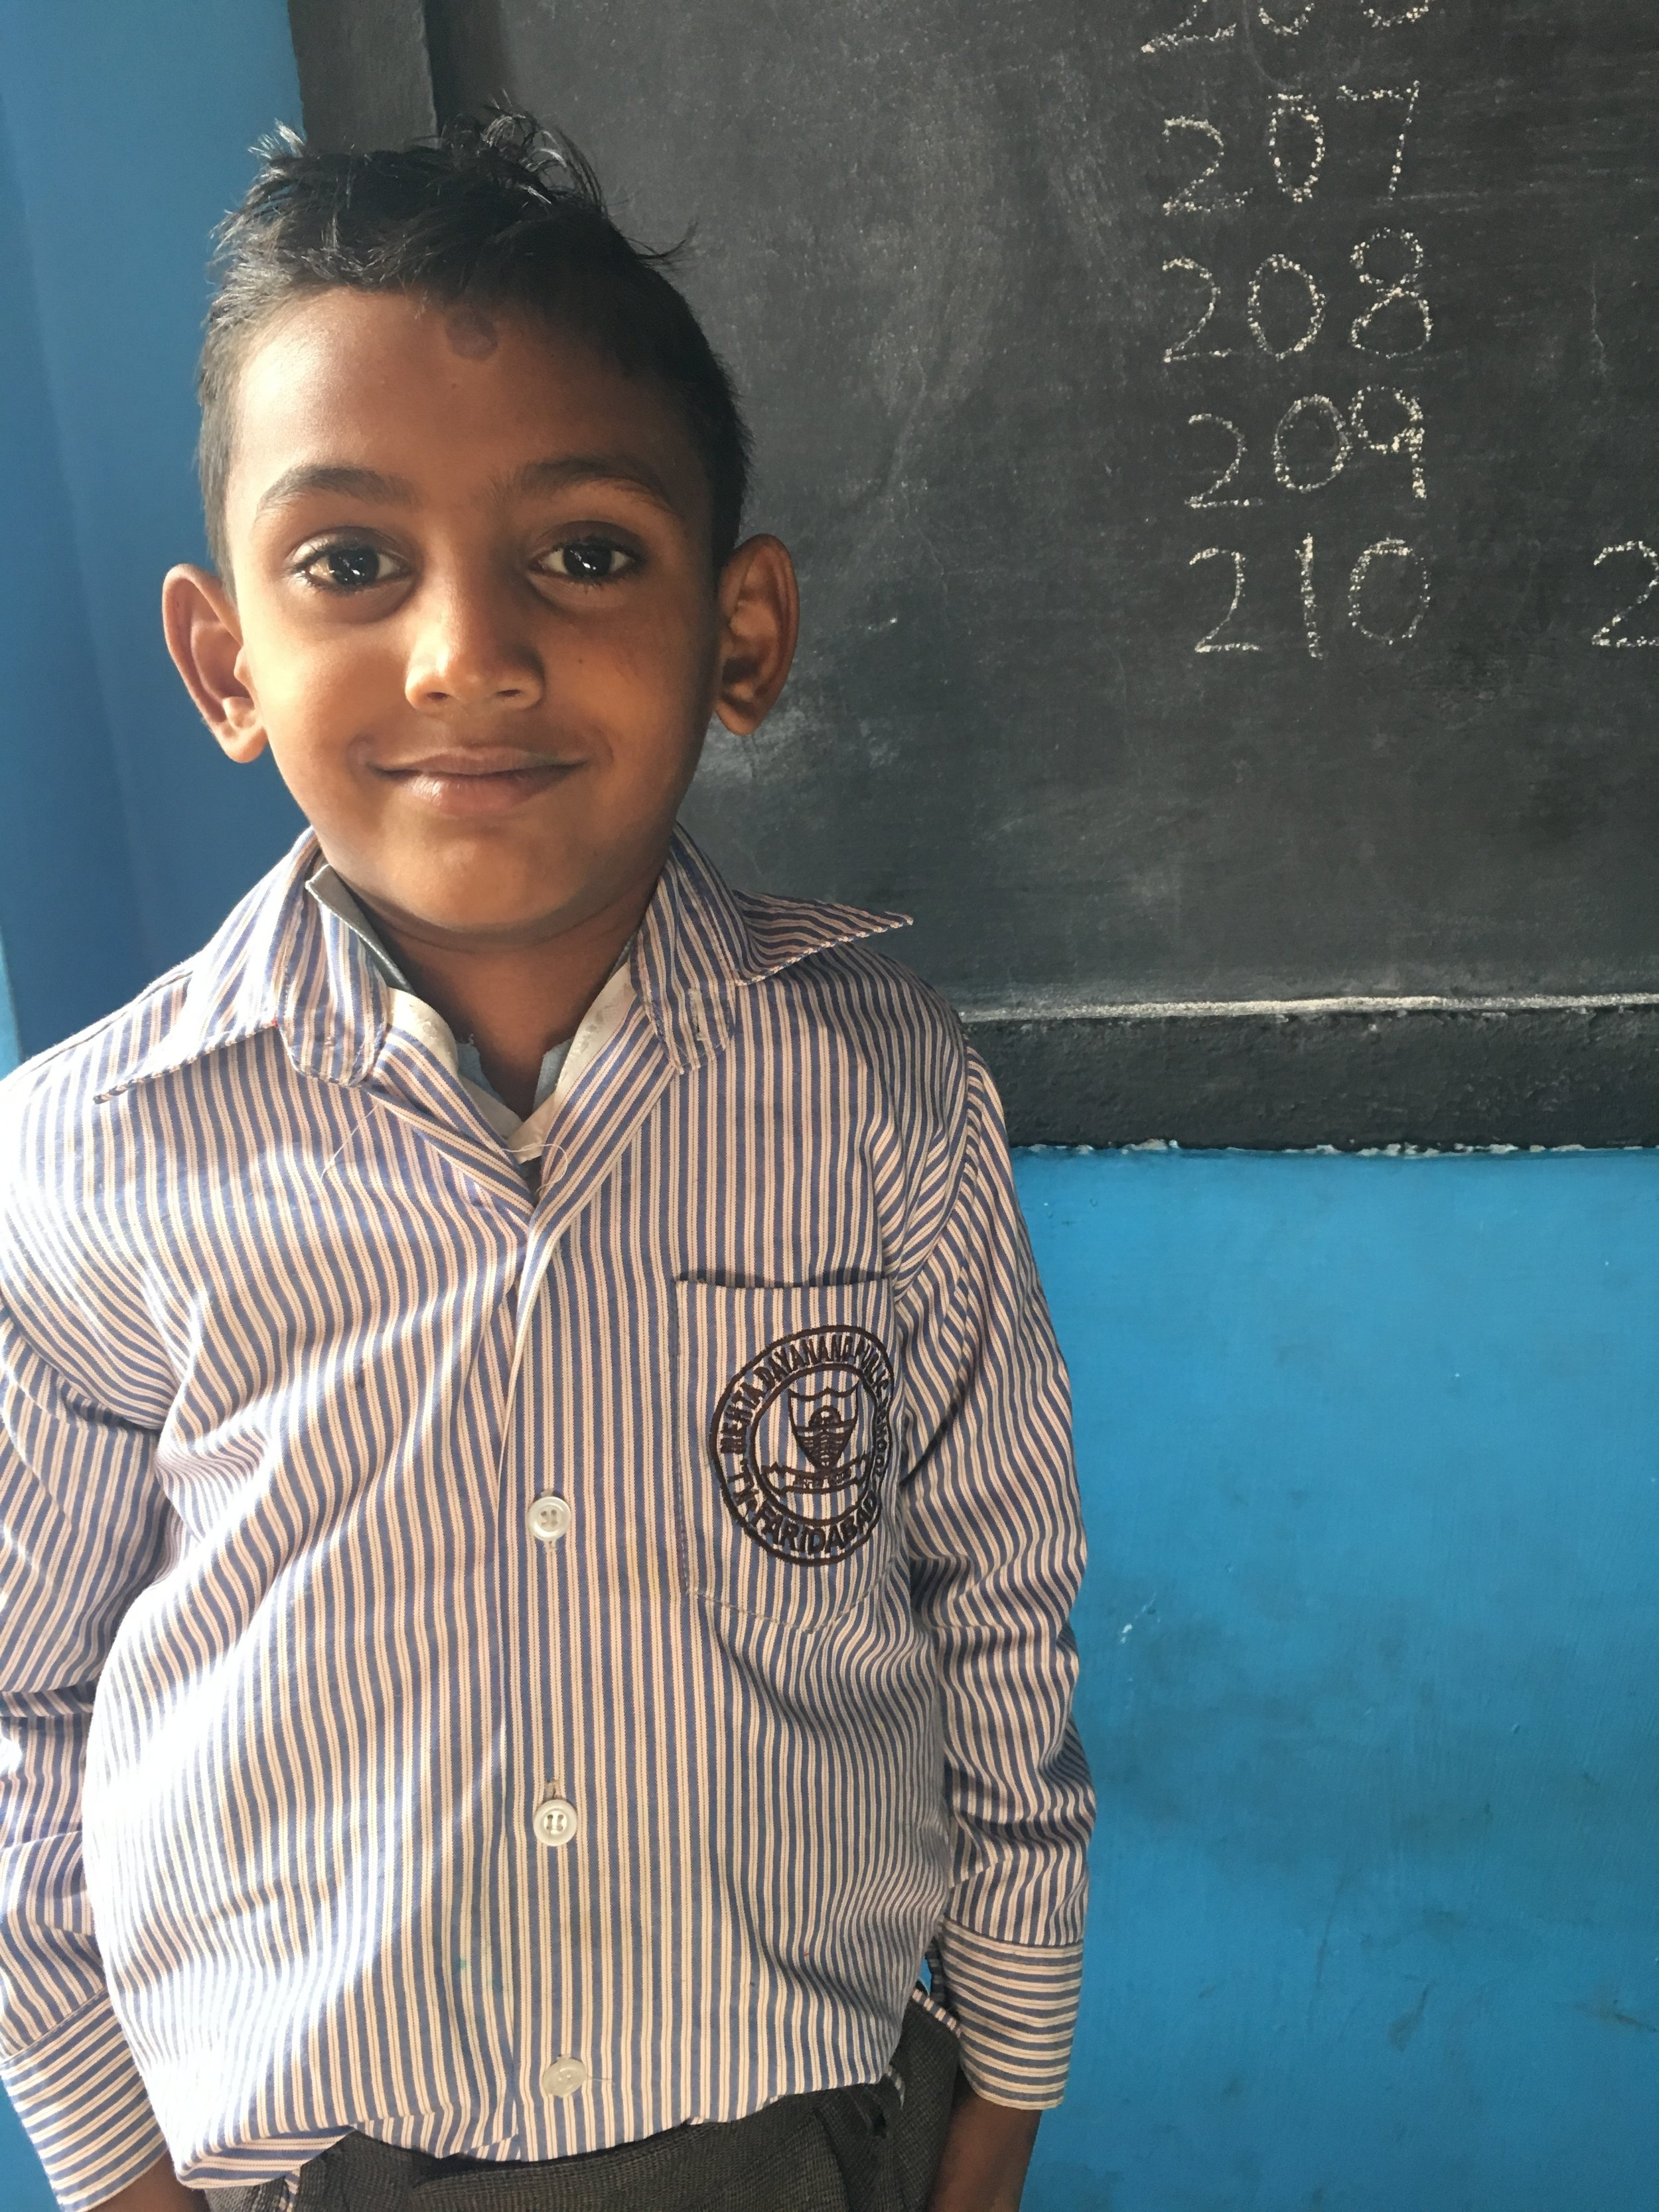 Adarsh - (S2S-238)Currently in need of sponsorship. Click here to sponsor Adarsh or another scholar for just $30/month!Sponsored previously by the Jamal family, Canada